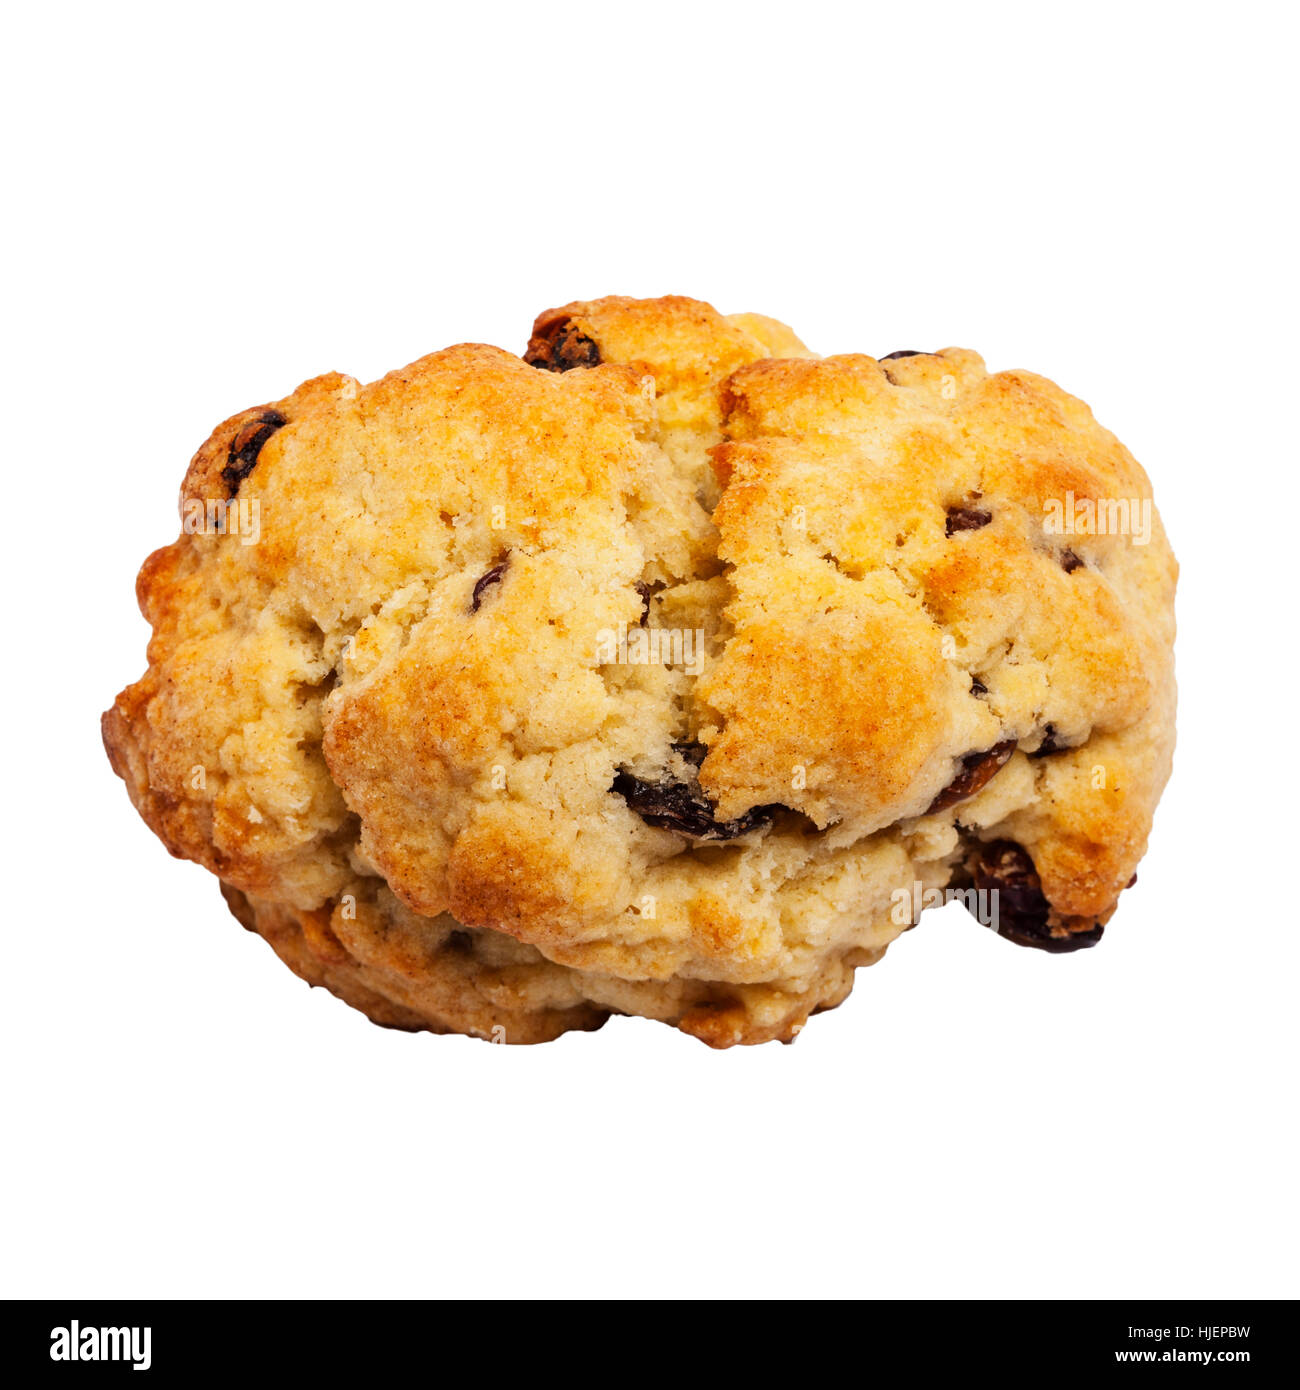 A home made rock cake on a white background - Stock Image